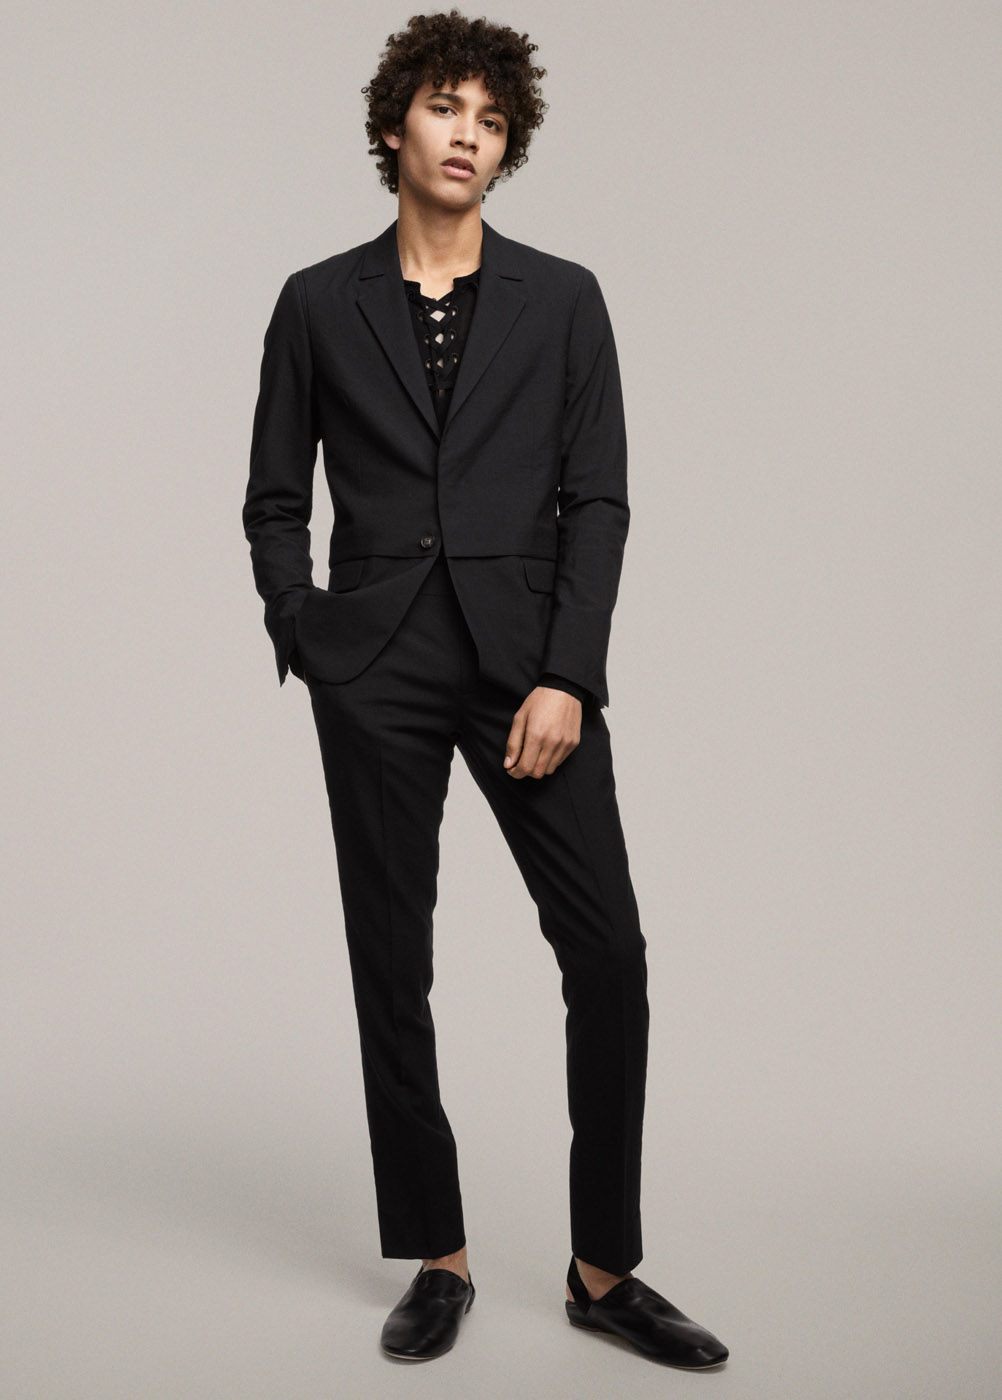 H&M Studio Spring Summer 2017 collection (21)